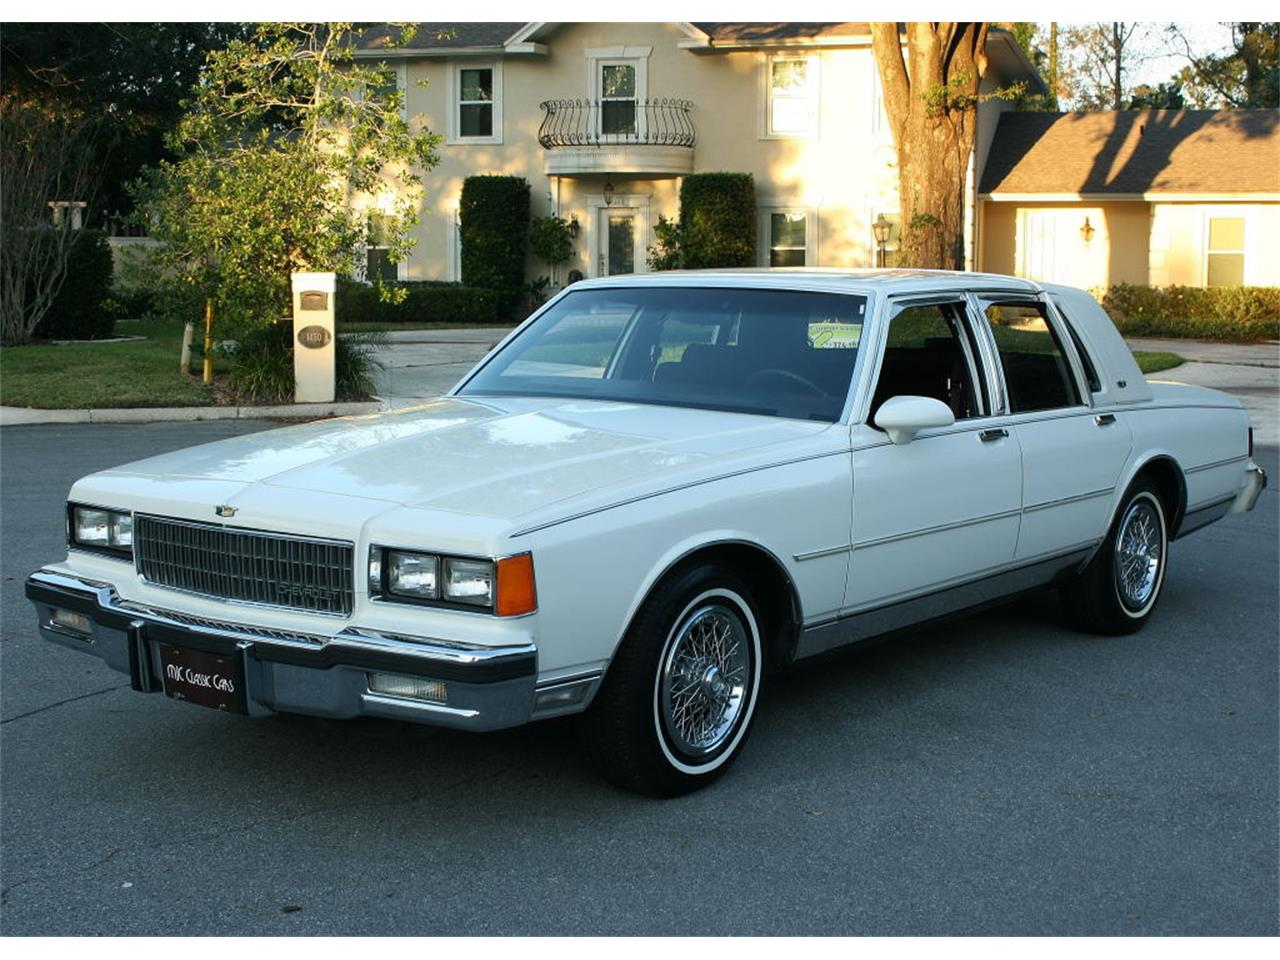 For Sale: 1986 Chevrolet Caprice in lakeland, Florida